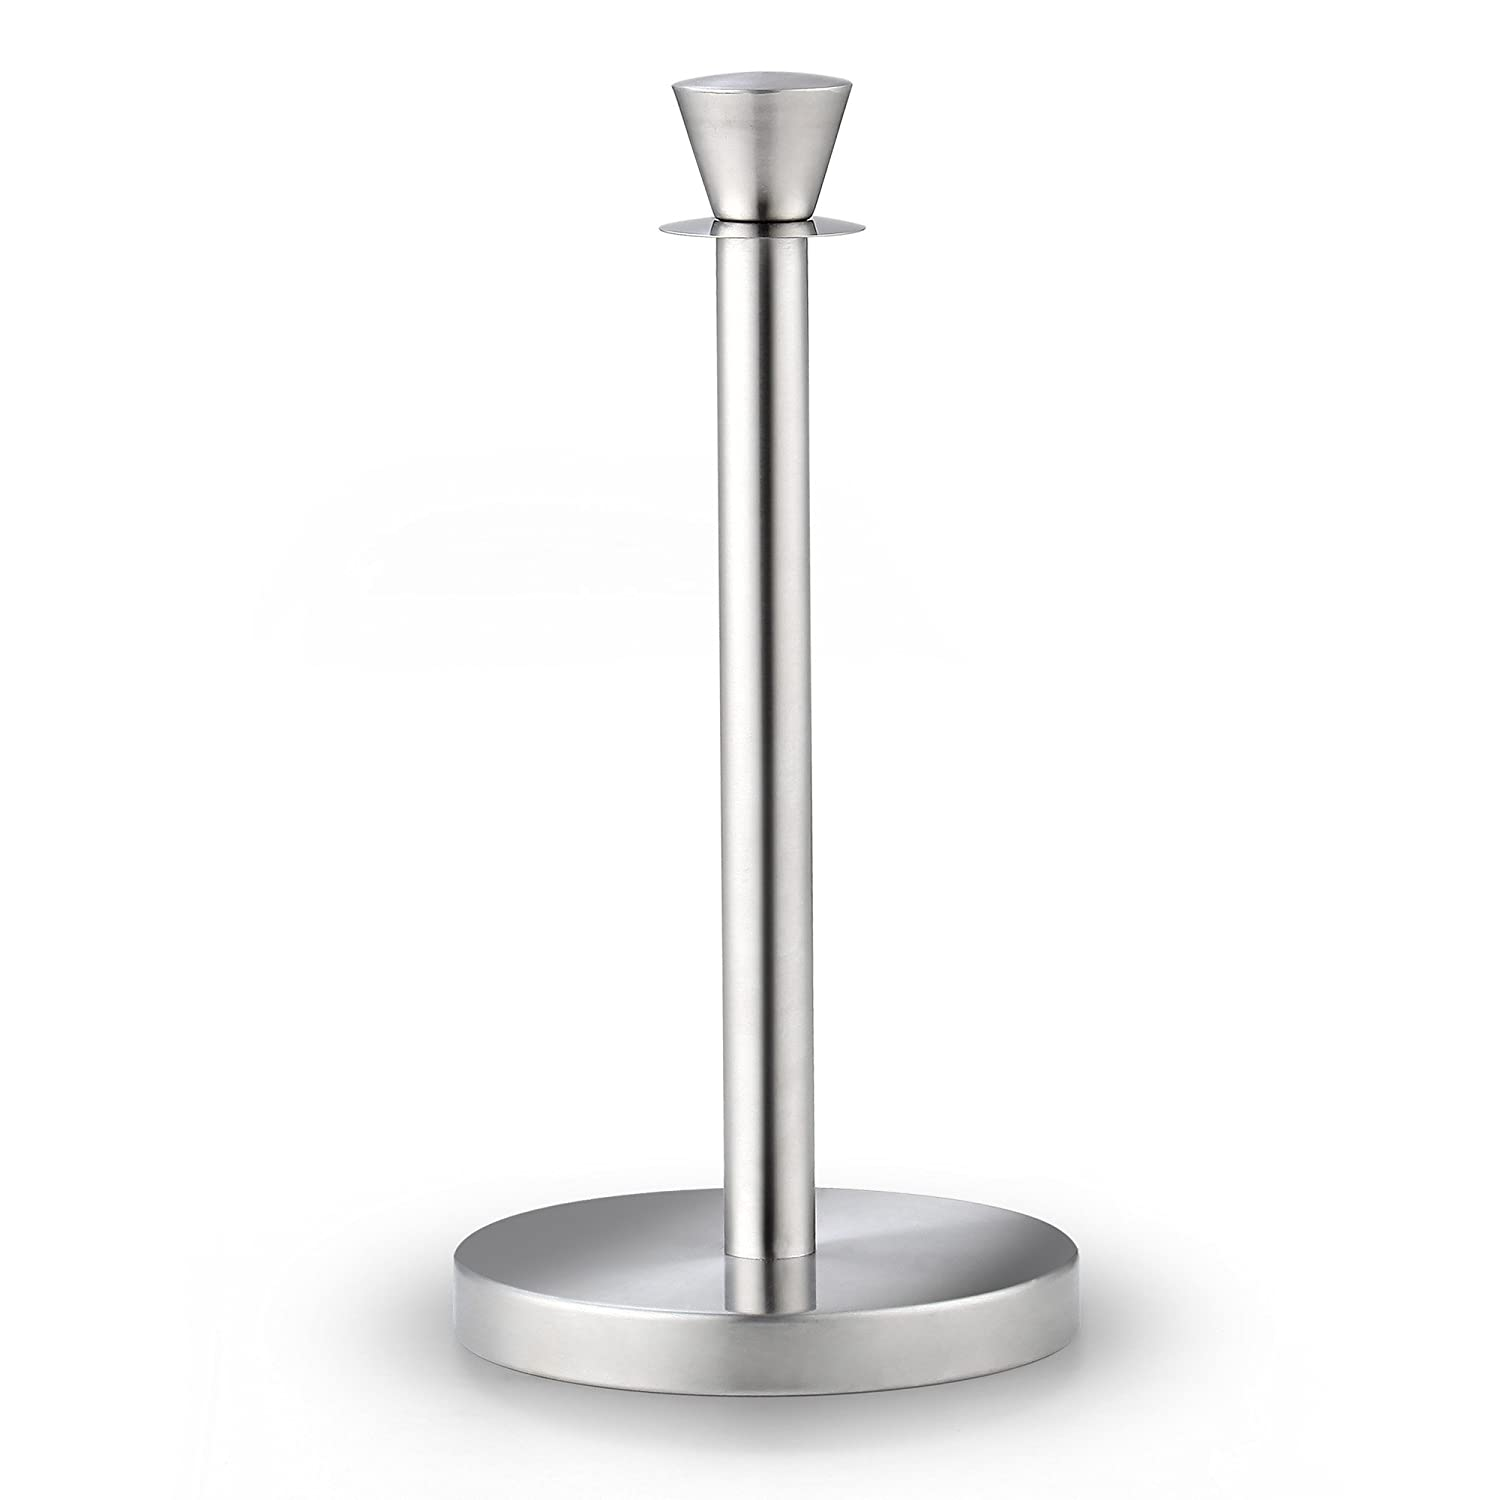 Cook N Home 02531 Stainless Steel Standing Paper Towel Holder, Jumbo, Silver